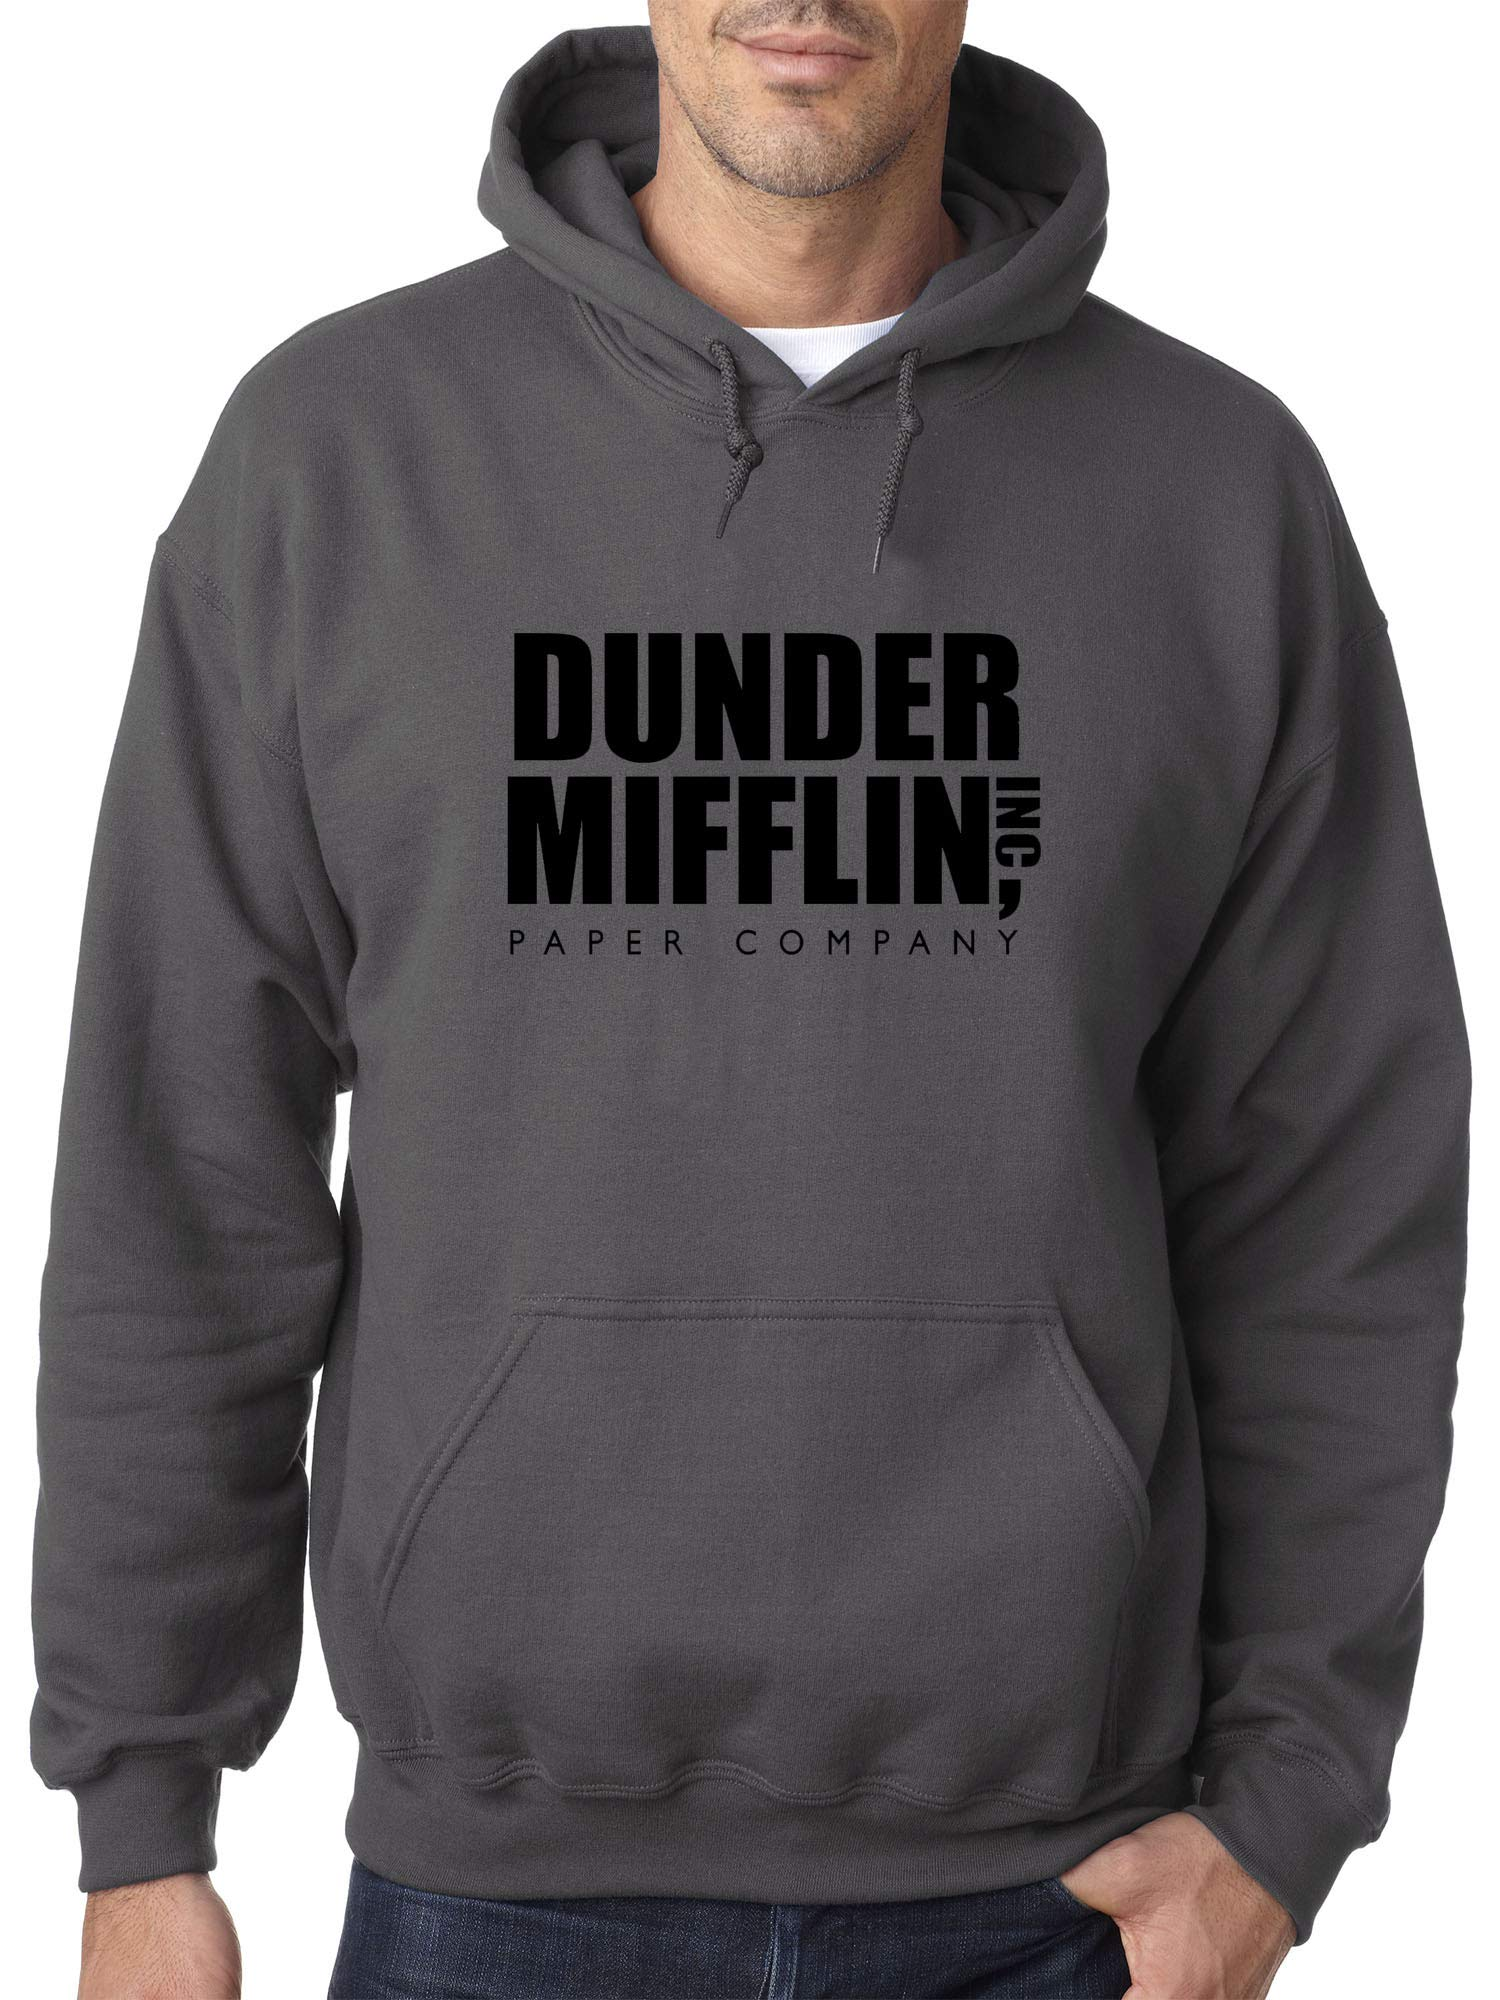 1165 Adult Dunder Mifflin Inc Paper Company Office Logo Unisex Pullover Shirts